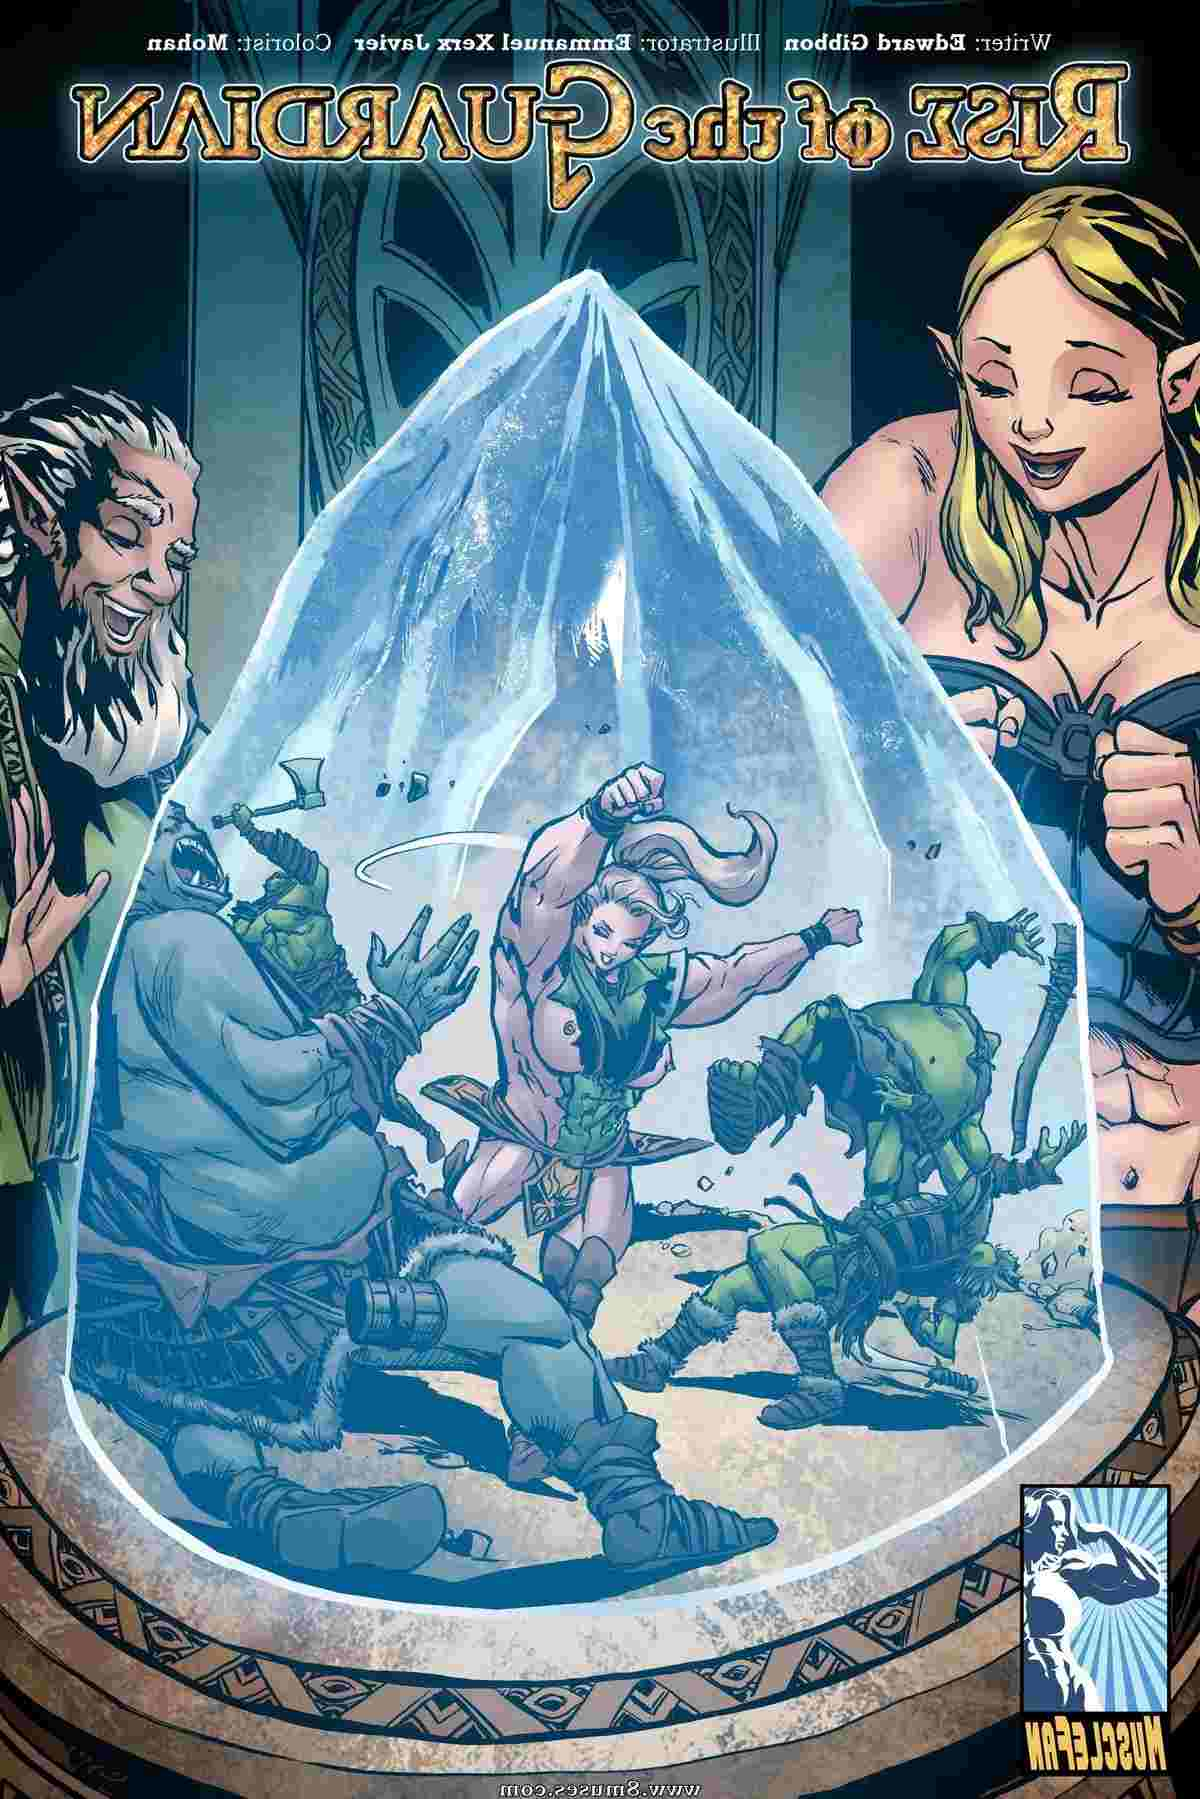 MuscleFan-Comics/Rise-of-the-Guardian Rise_of_the_Guardian__8muses_-_Sex_and_Porn_Comics_4.jpg